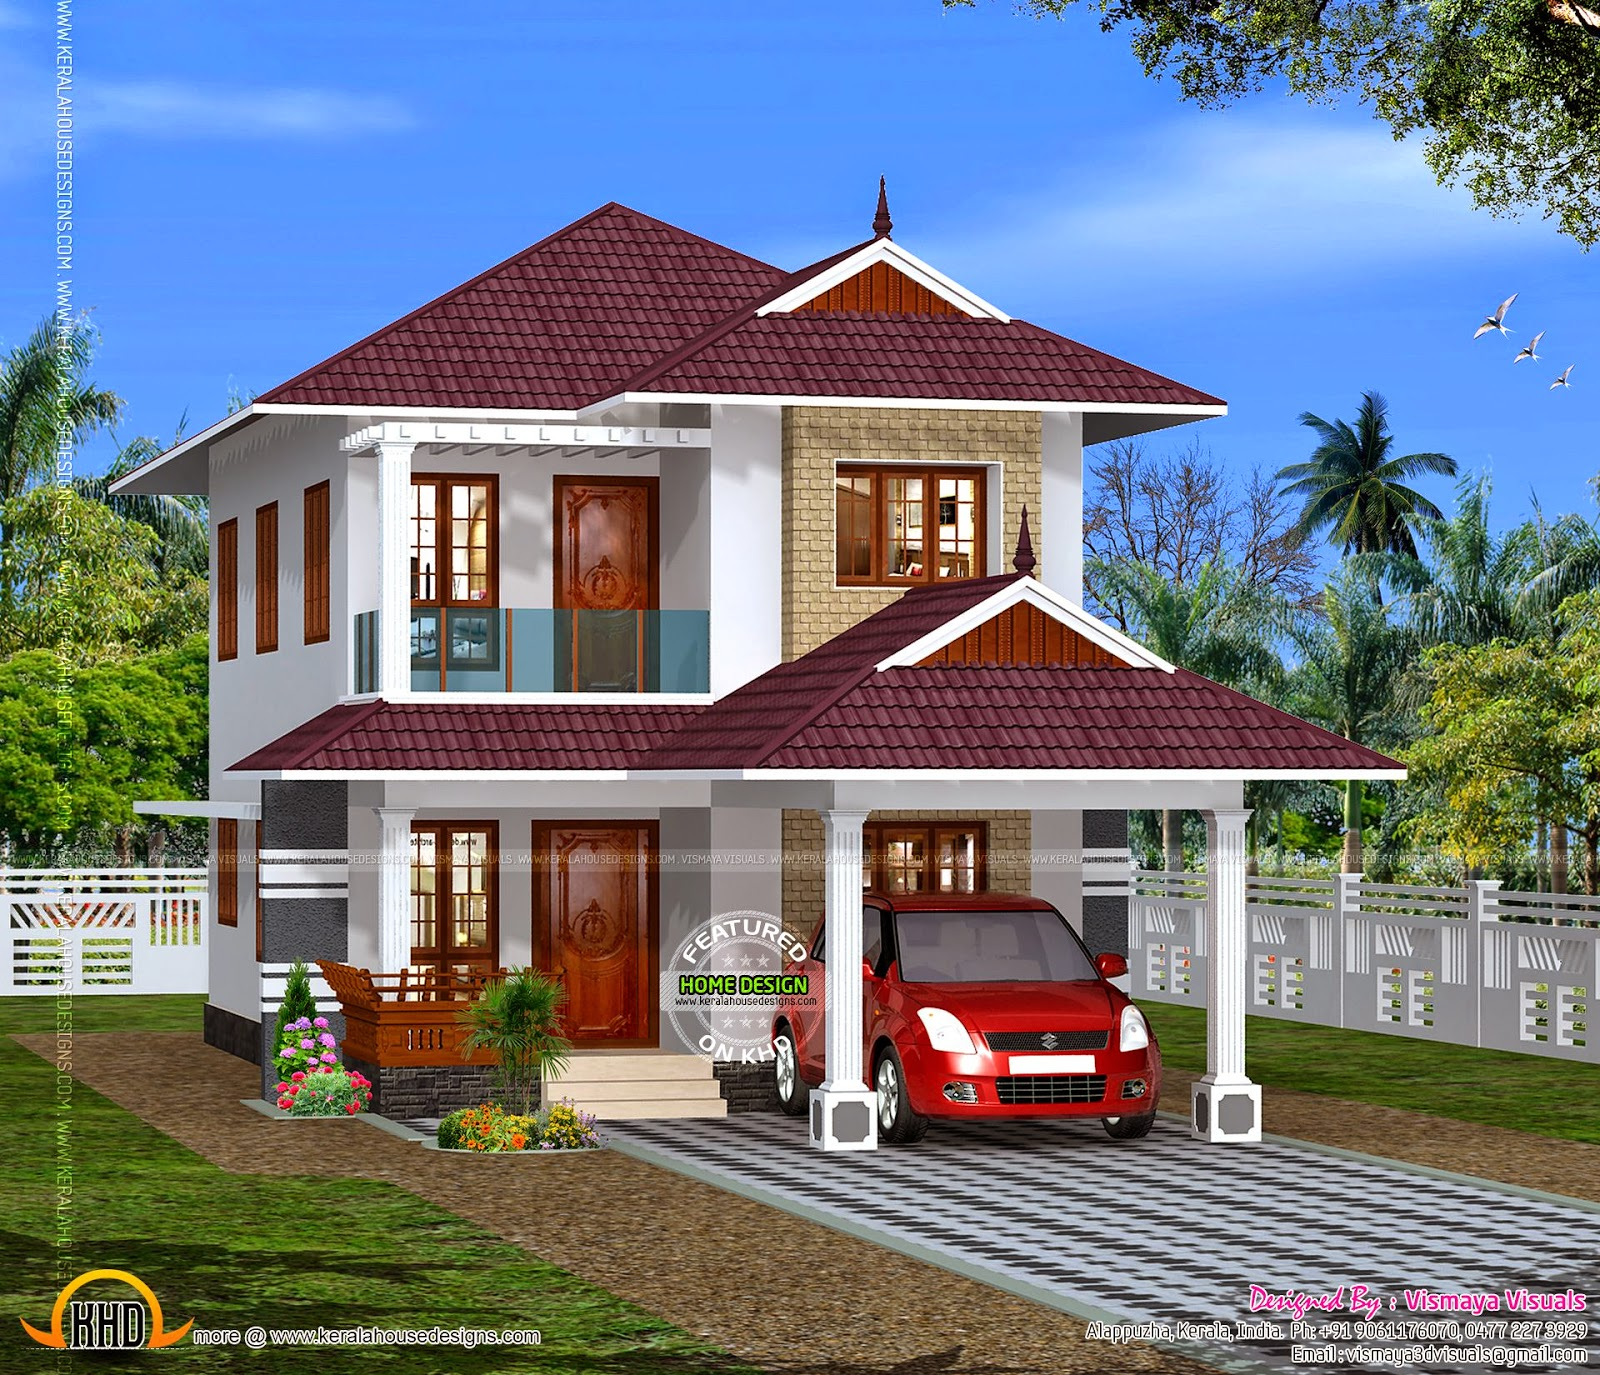 Kerala Model Home Plans: Kerala Traditional 3 Bedroom House Plans